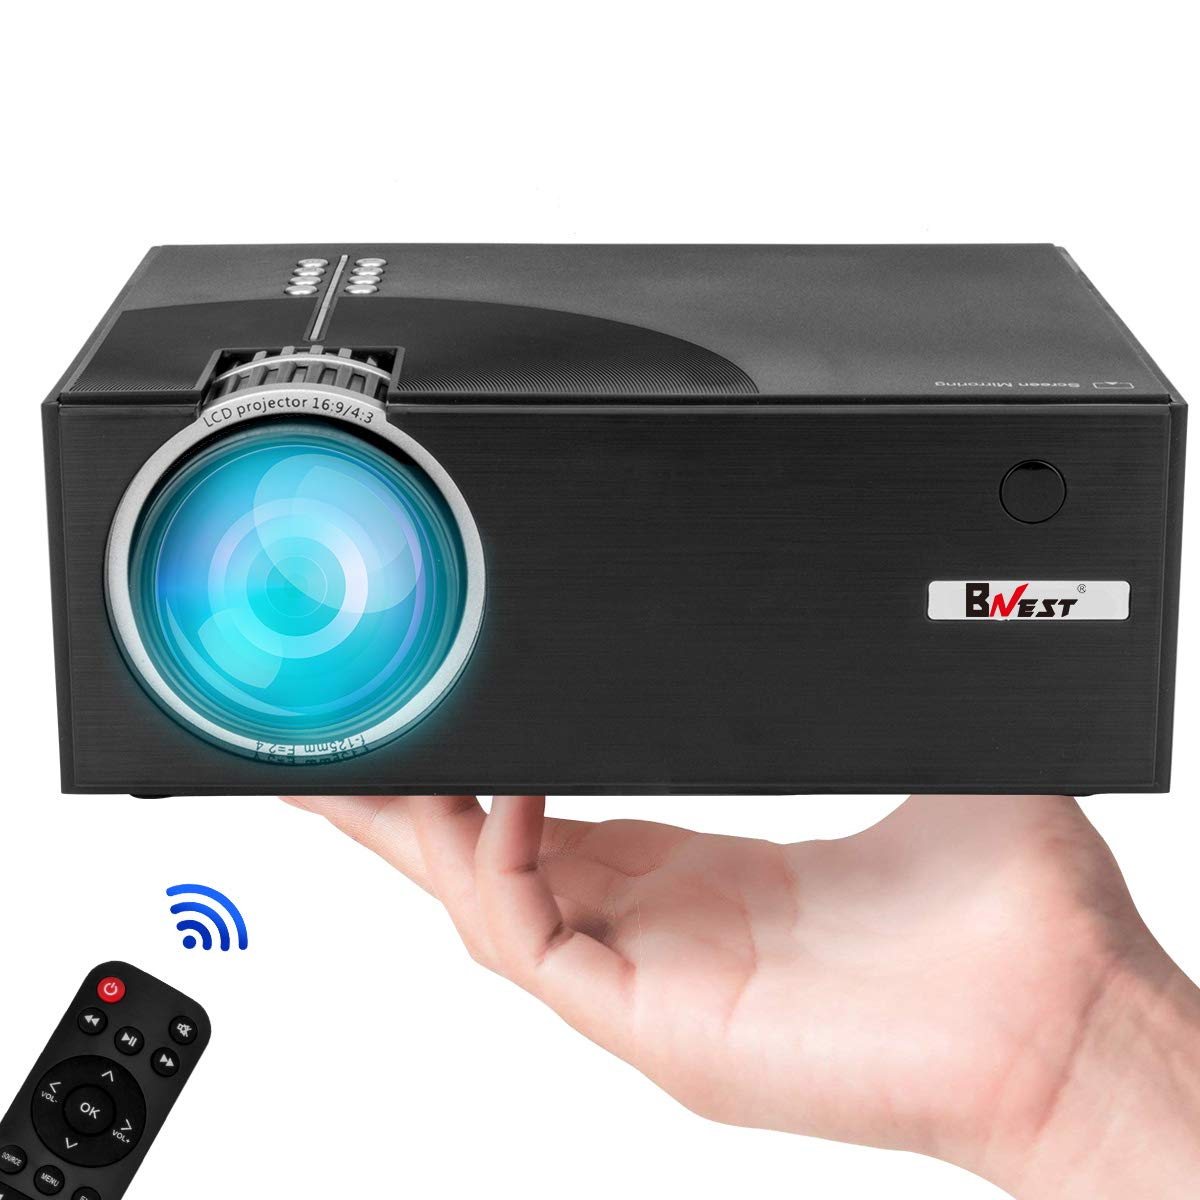 BNEST Home Video Projector, Portable Handheld HD Projector, Support 720P, 1080P Video, Portable Projector Supports iPhone, Android, HDMI, USB, VGA, AV, SD Card, Compatible with Fire TV Stick